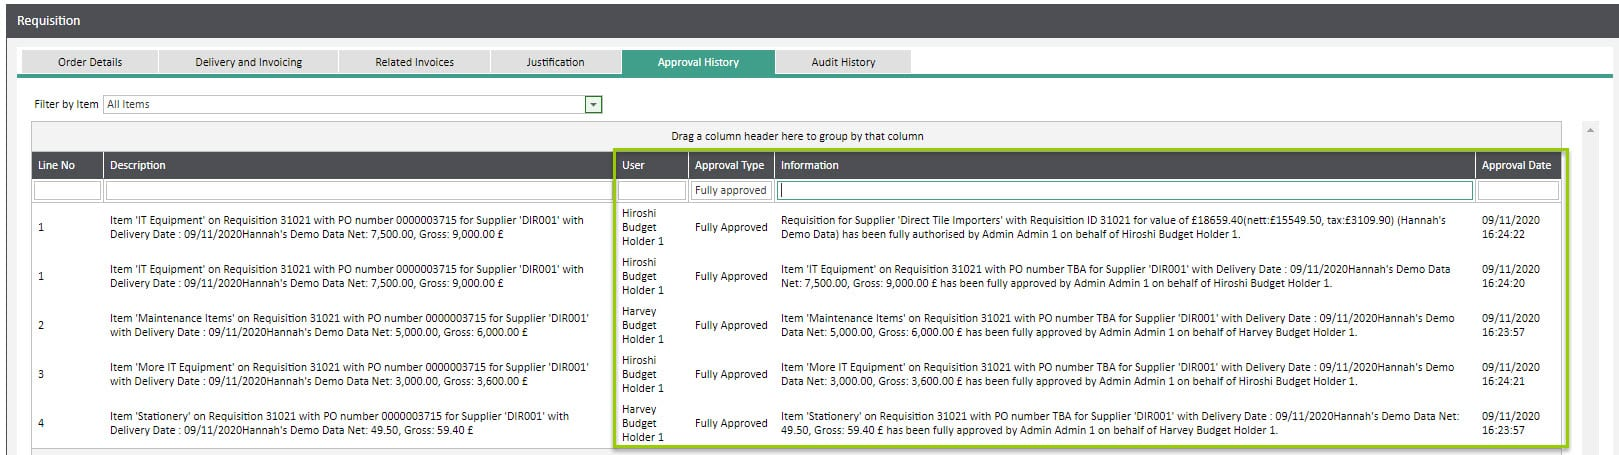 Sicon WAP Approval Routes Help and User Guide - WAP Approval HUG 5.5 - Image 4